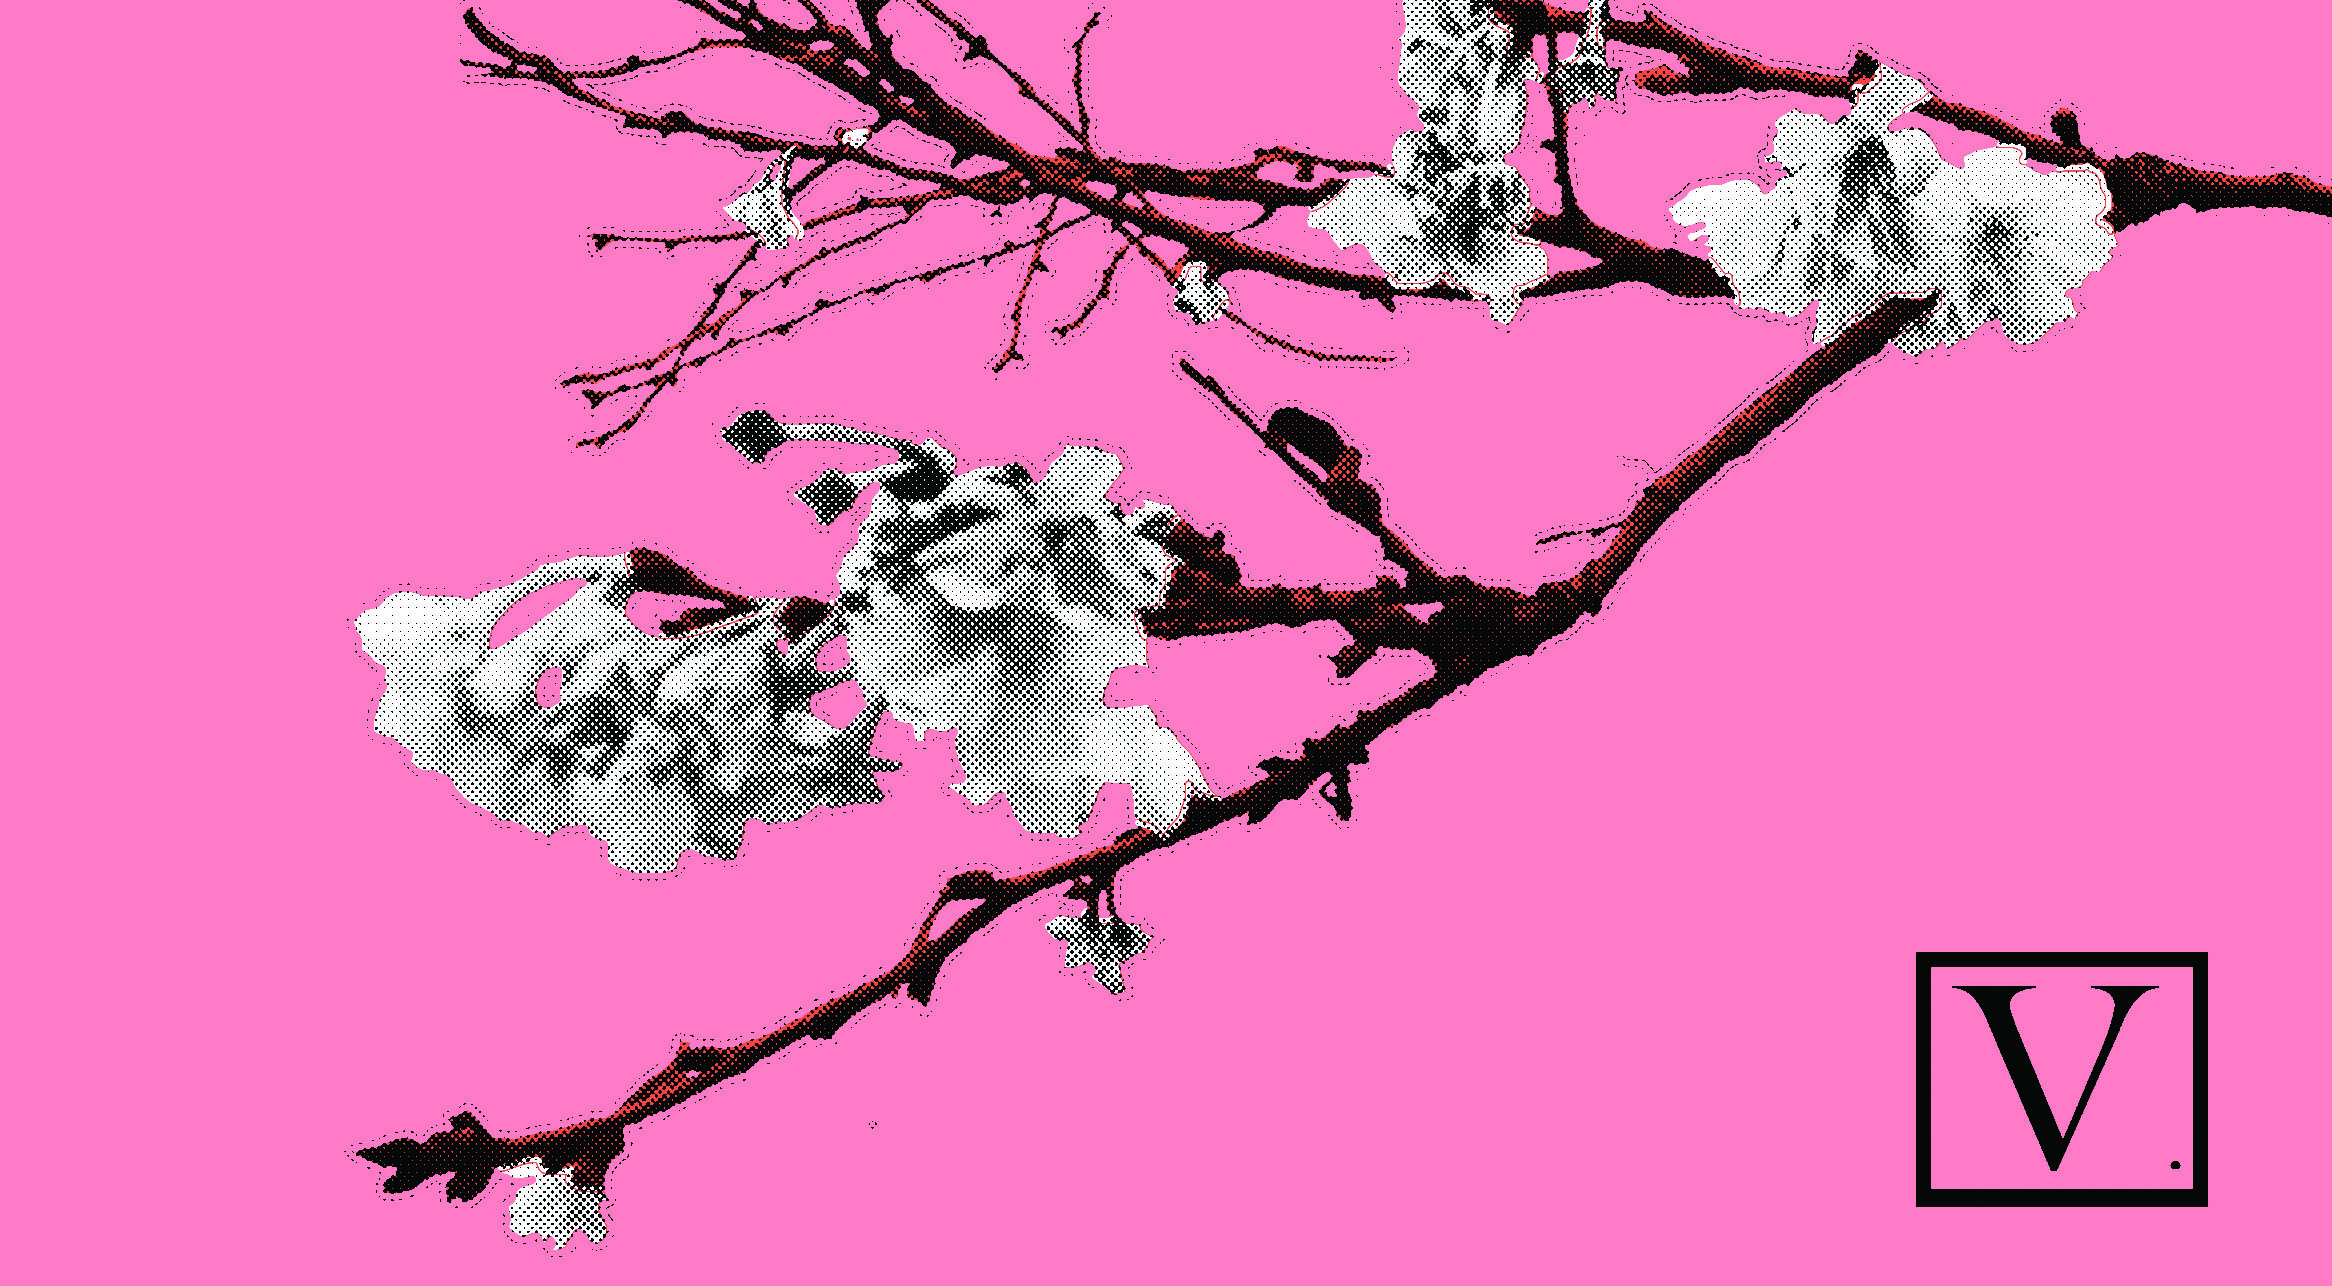 "Cherry Blossom Pink & White, 15 edition + 2 Artist Proof, inkjet print on archival paper 290g/sm,  20"" X 37"", 2018"